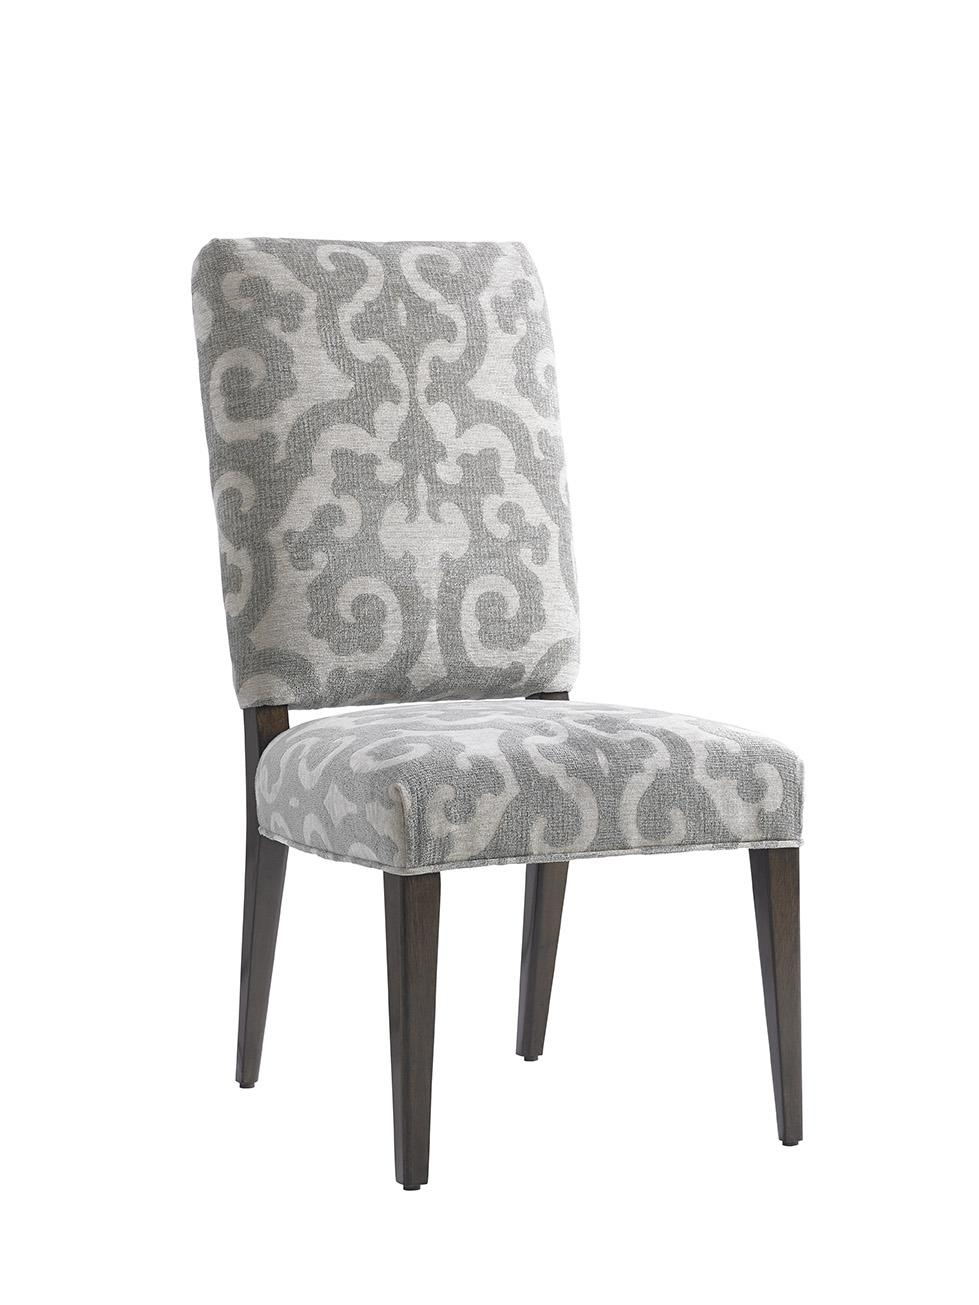 LAUREL CANYON Sierra Side Chair (Custom) by Lexington at Johnny Janosik